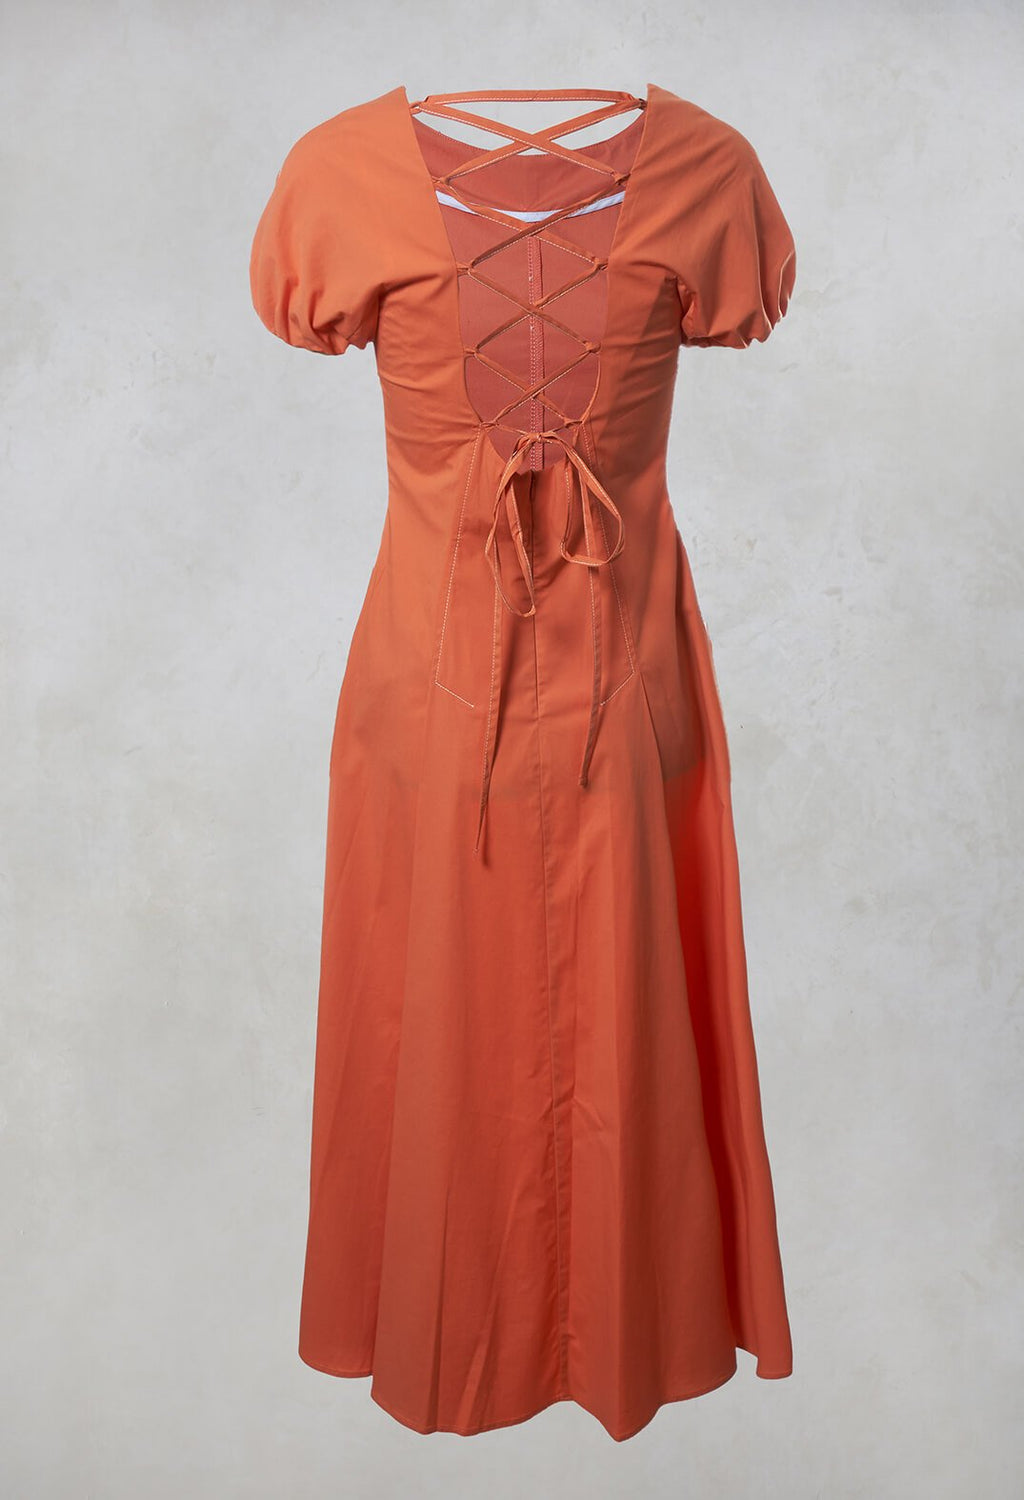 A-Line Dress in Antique Rose